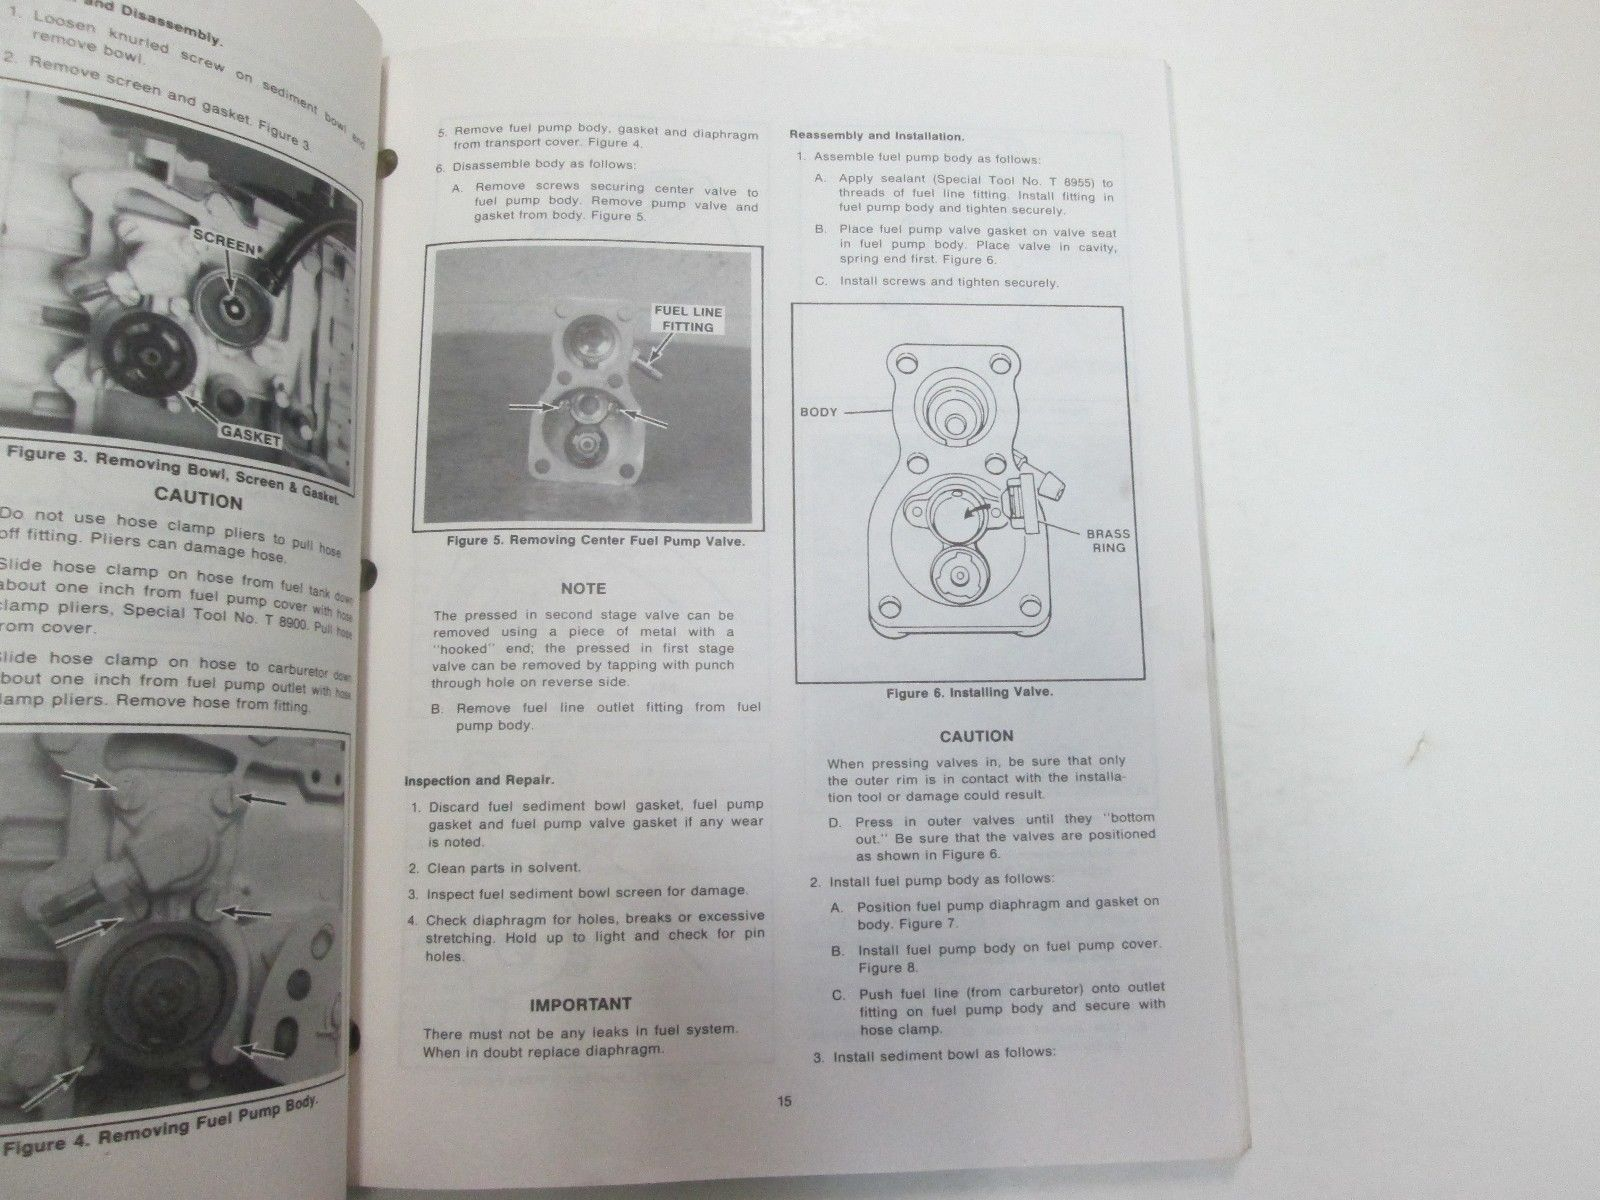 1984 1985 1986 Force Outboards 35 HP Outboard Motors Service Manual STAIN WORN** image 10